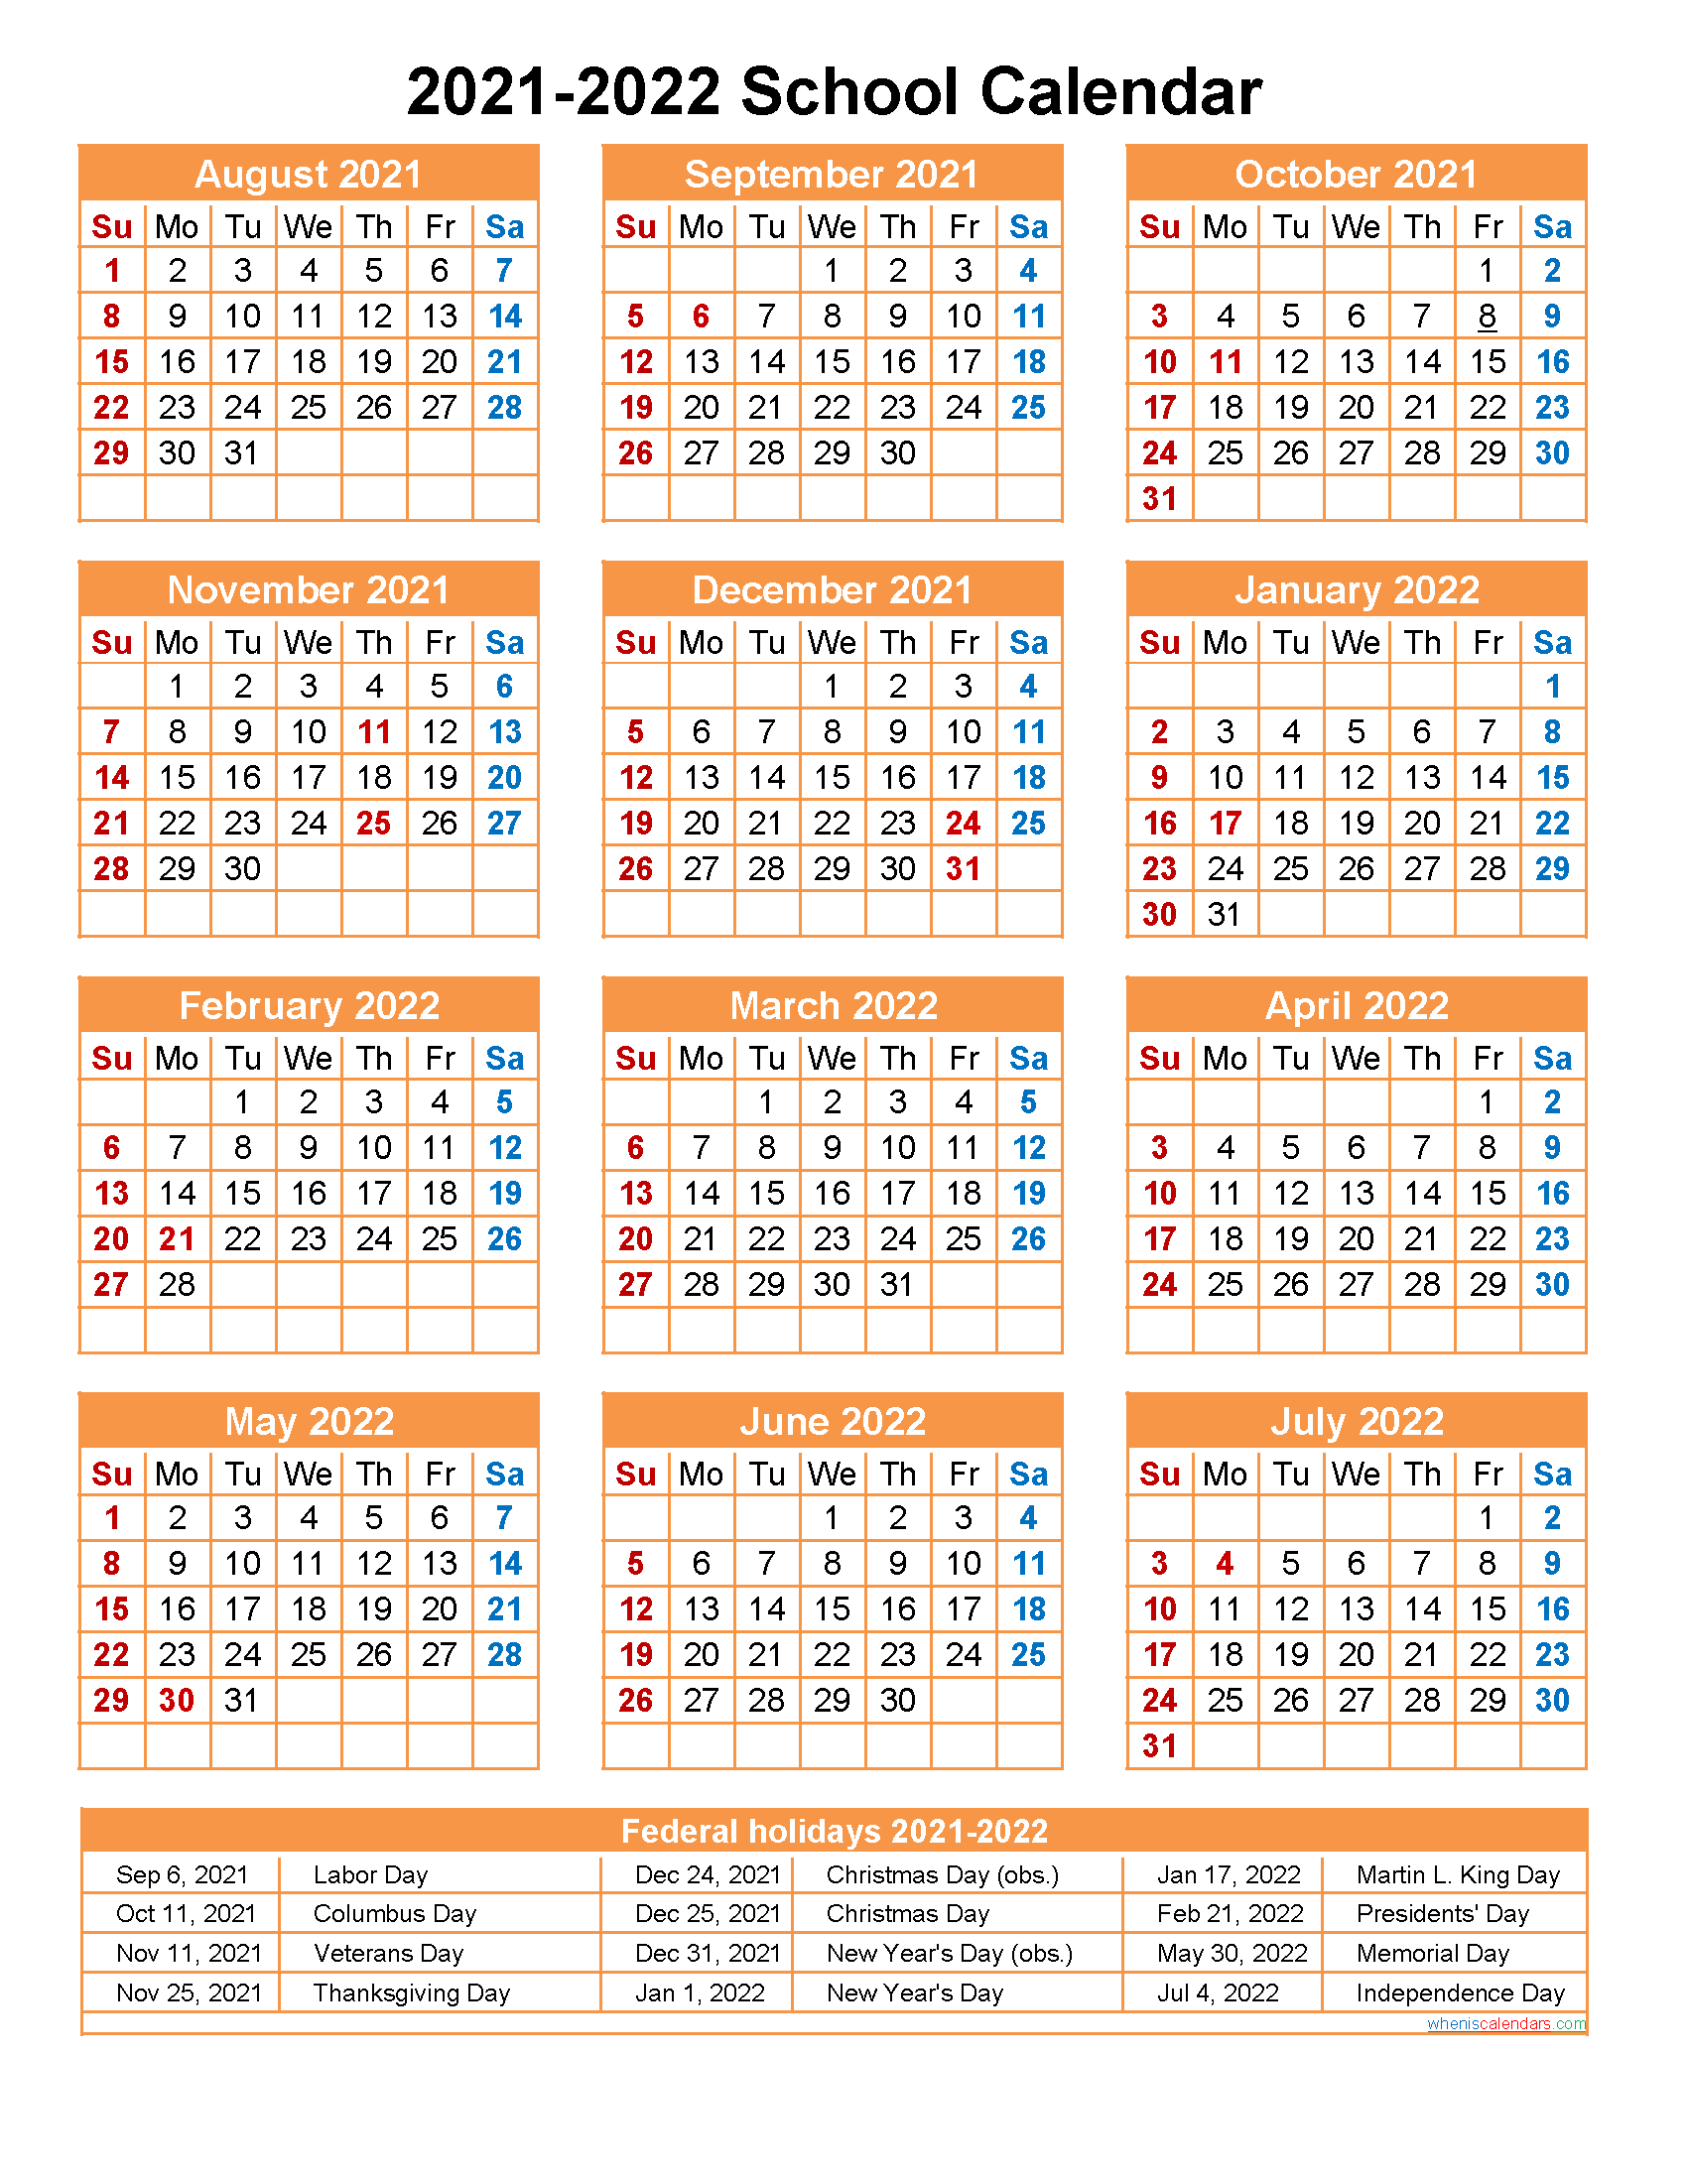 School Calendar 2021 and 2022 Printable